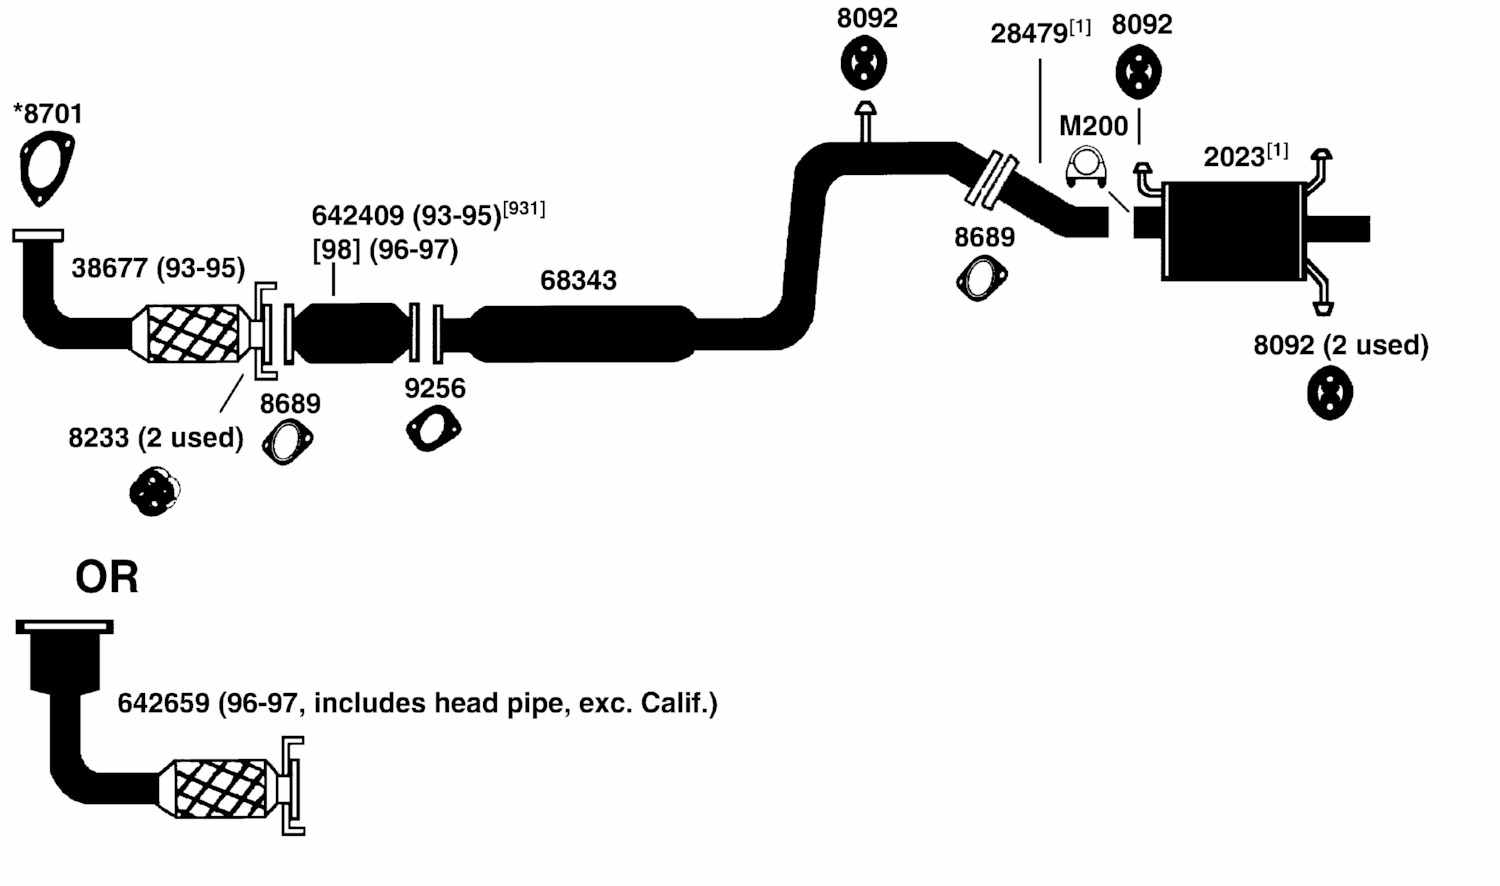 Gm 5 0 Engine Diagram further Bmw E92 Wiring Diagram further HP PartList as well Suspension Parts additionally Frpp Speedo Recal 9904 Install. on jeep cherokee performance parts